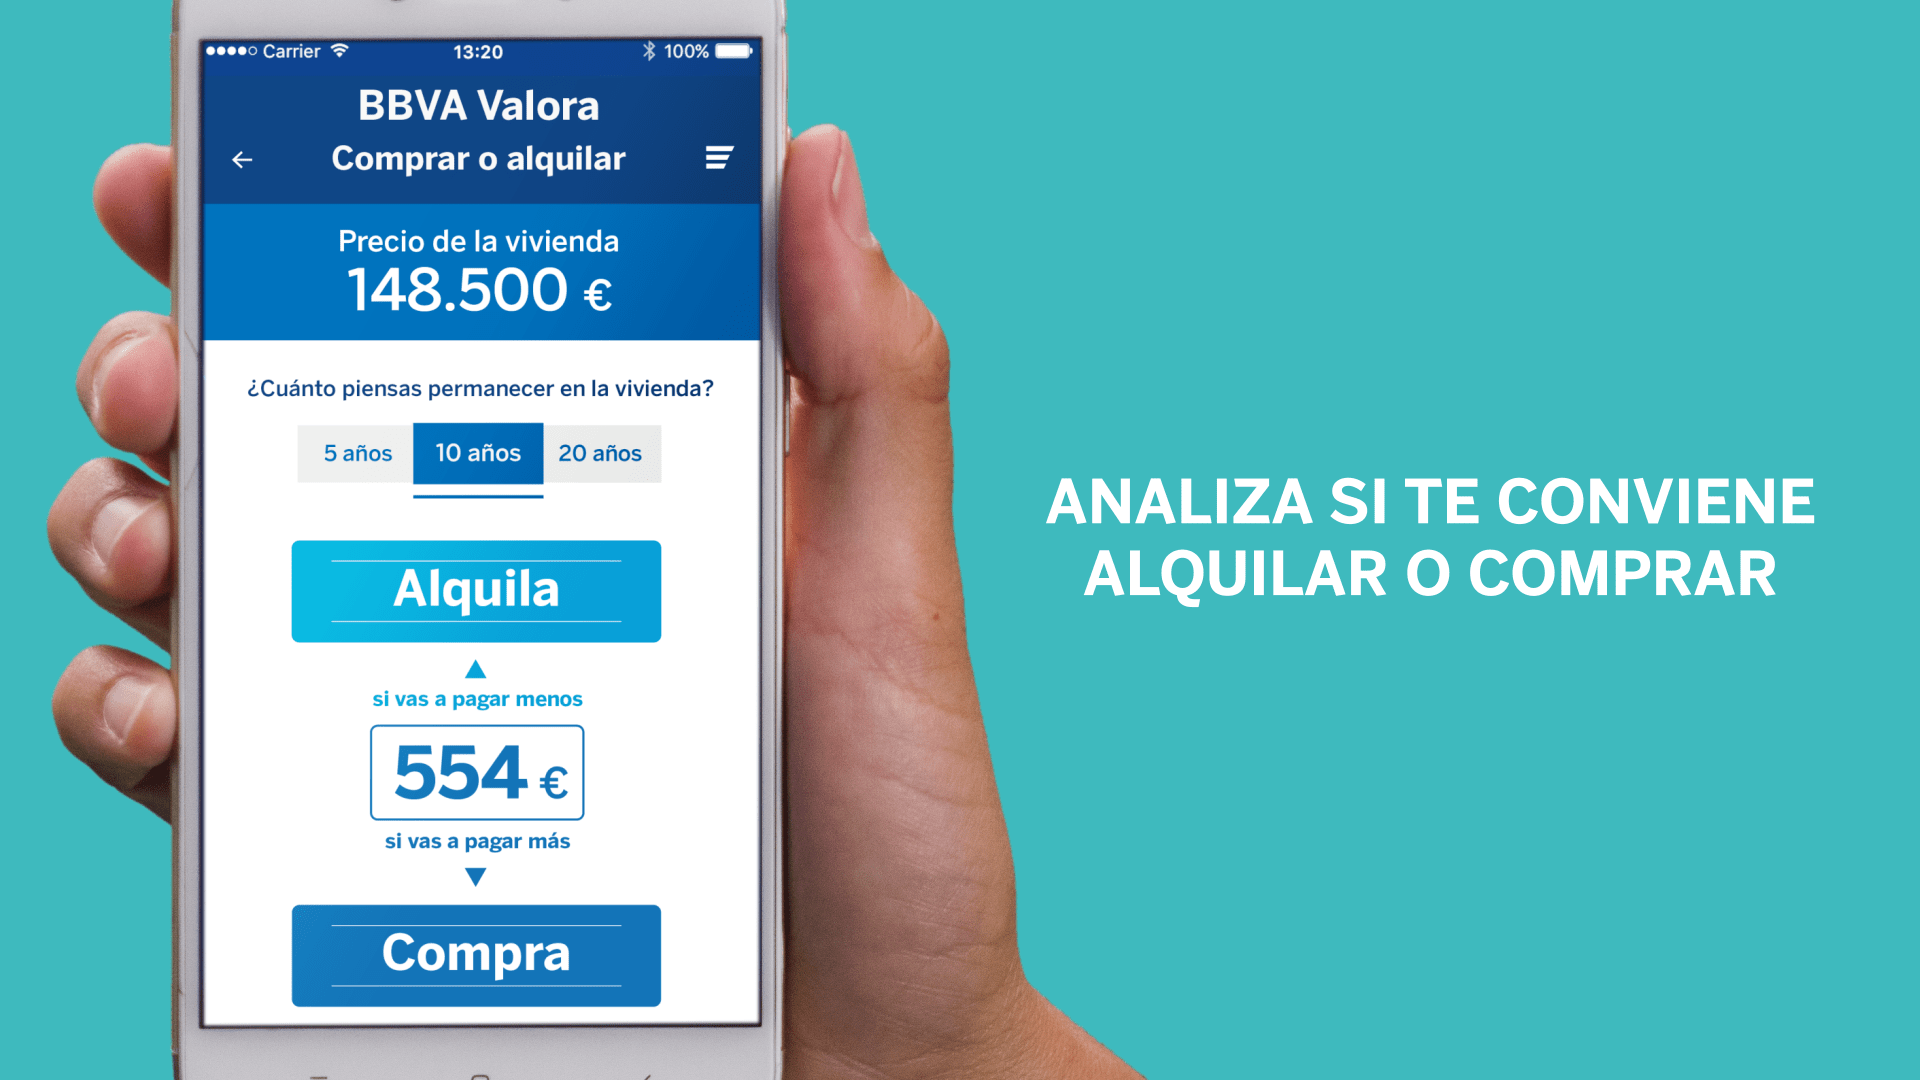 Hipoteca 100 Bbva Should I Buy Or Rent Bbva Valora Your Property Valuation Tool